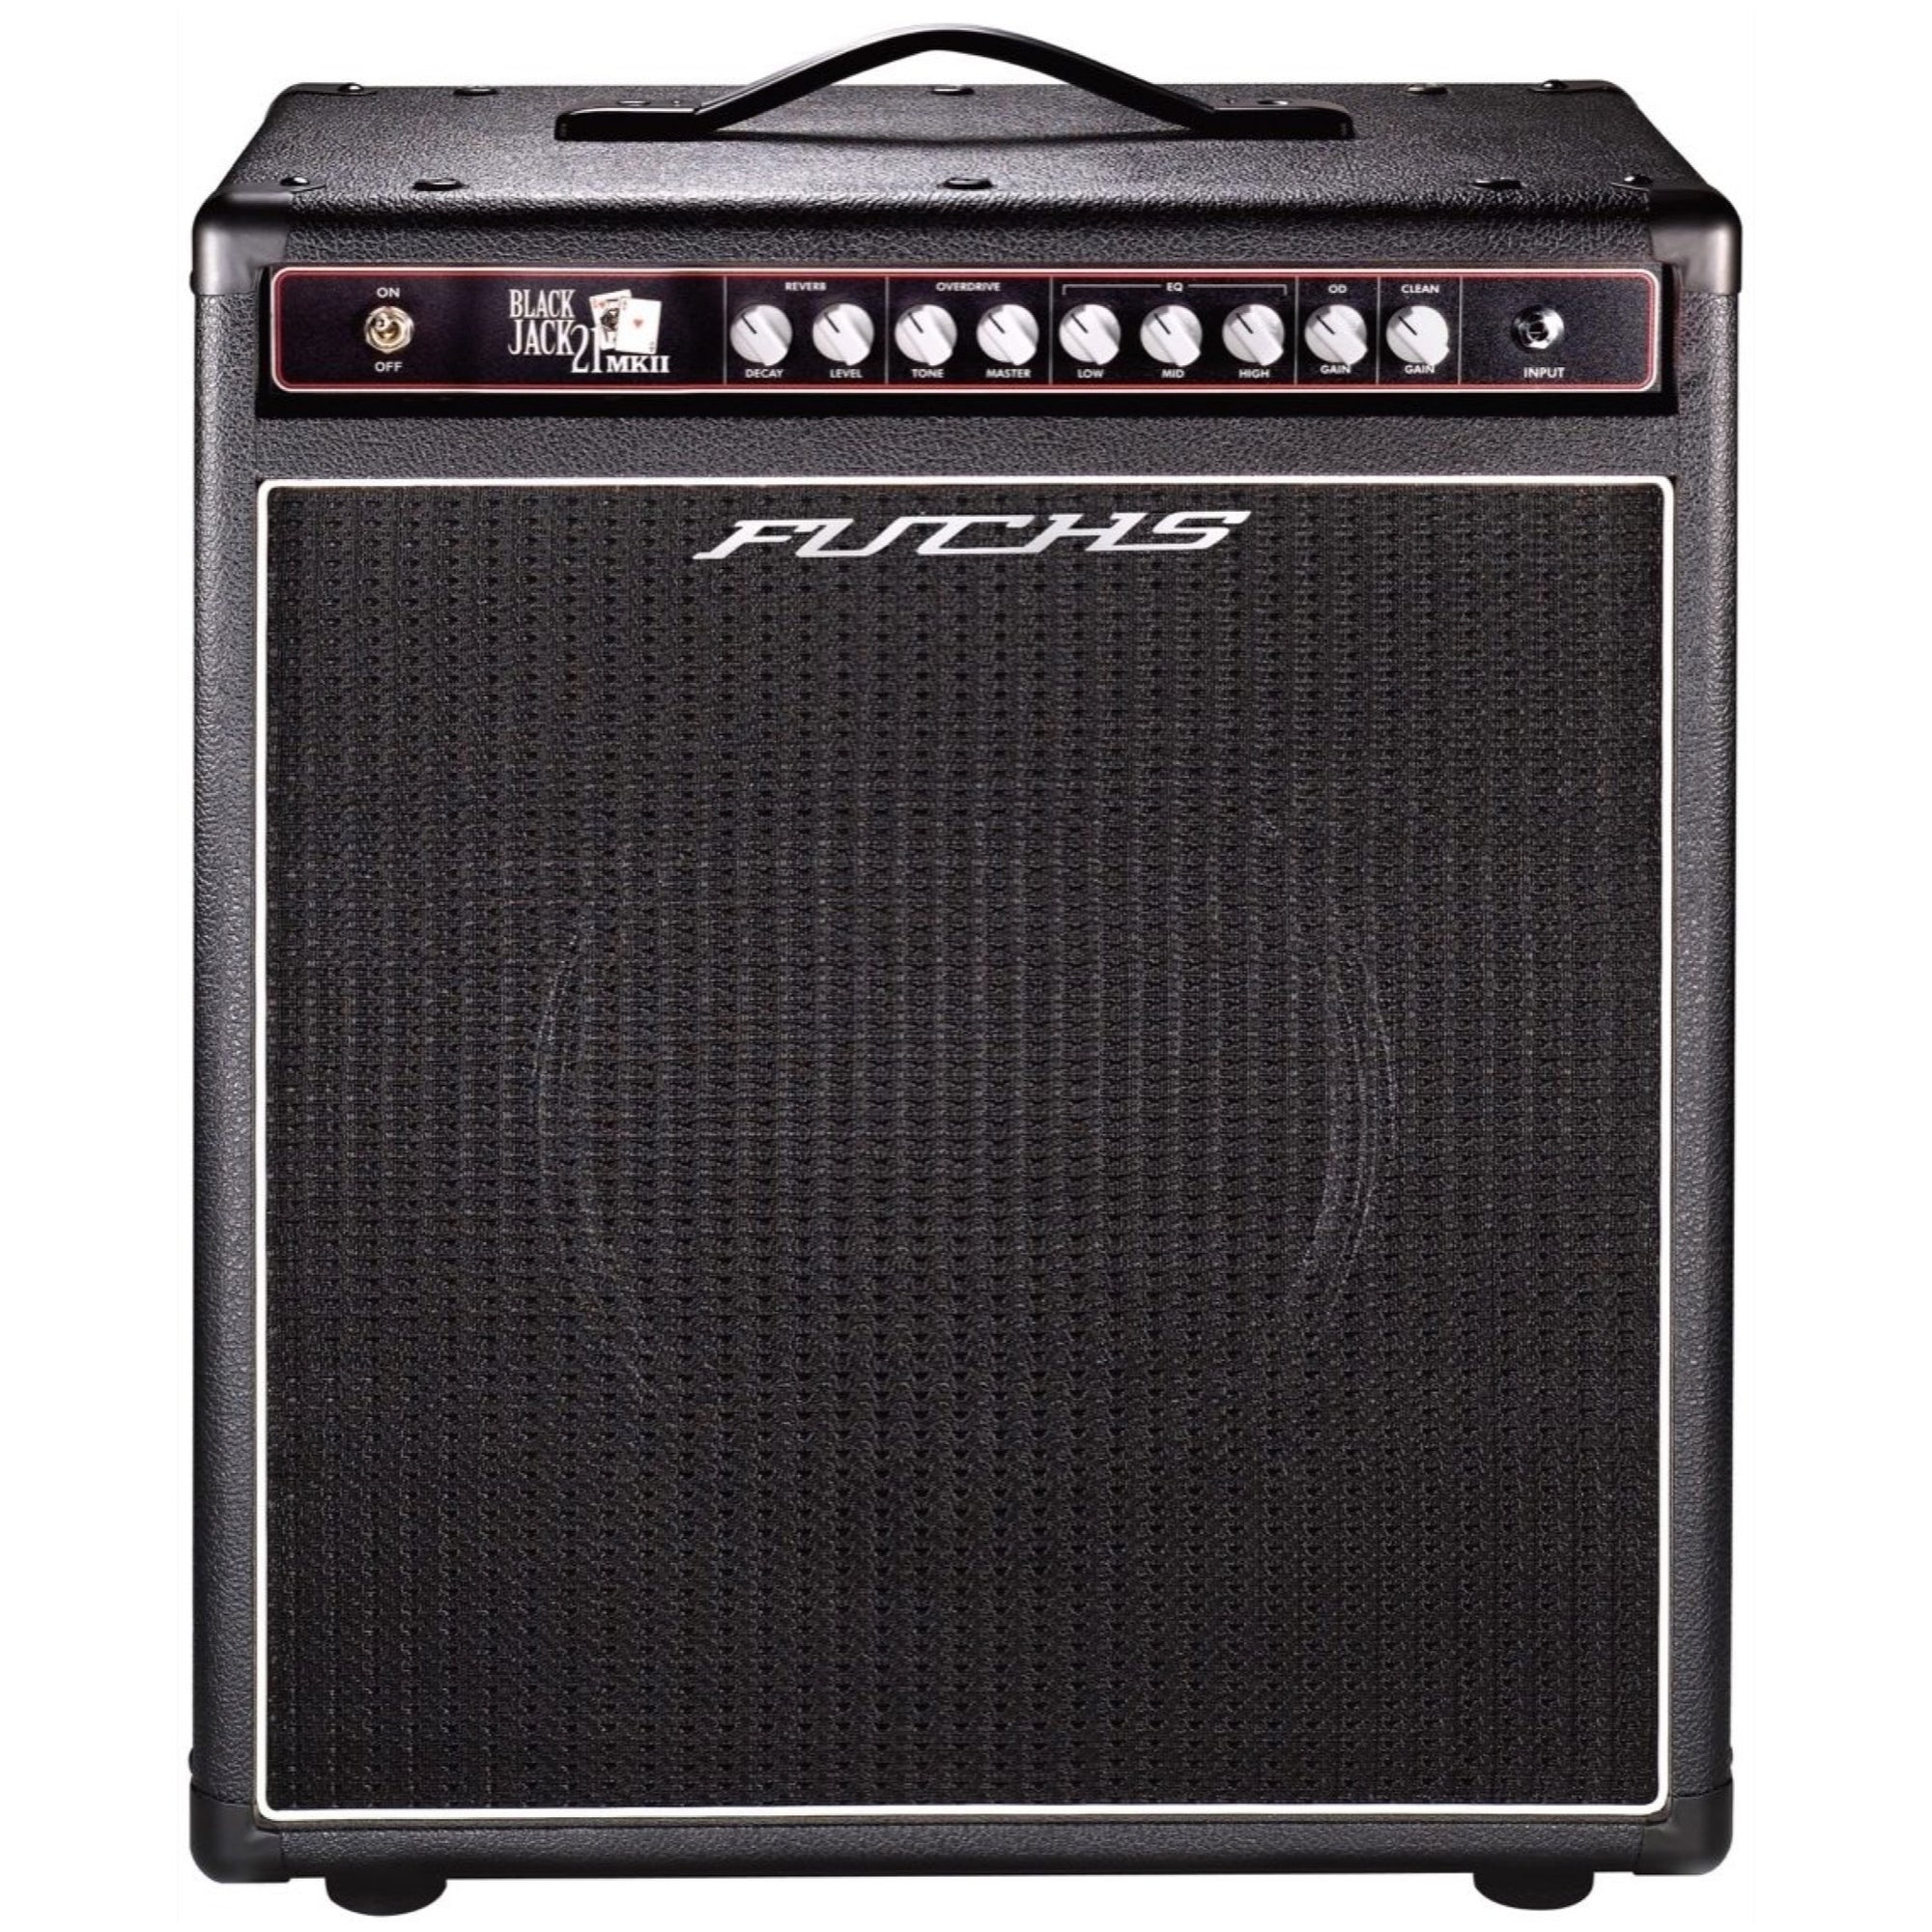 Fuchs Blackjack 21 Guitar Combo Amplifier, Black